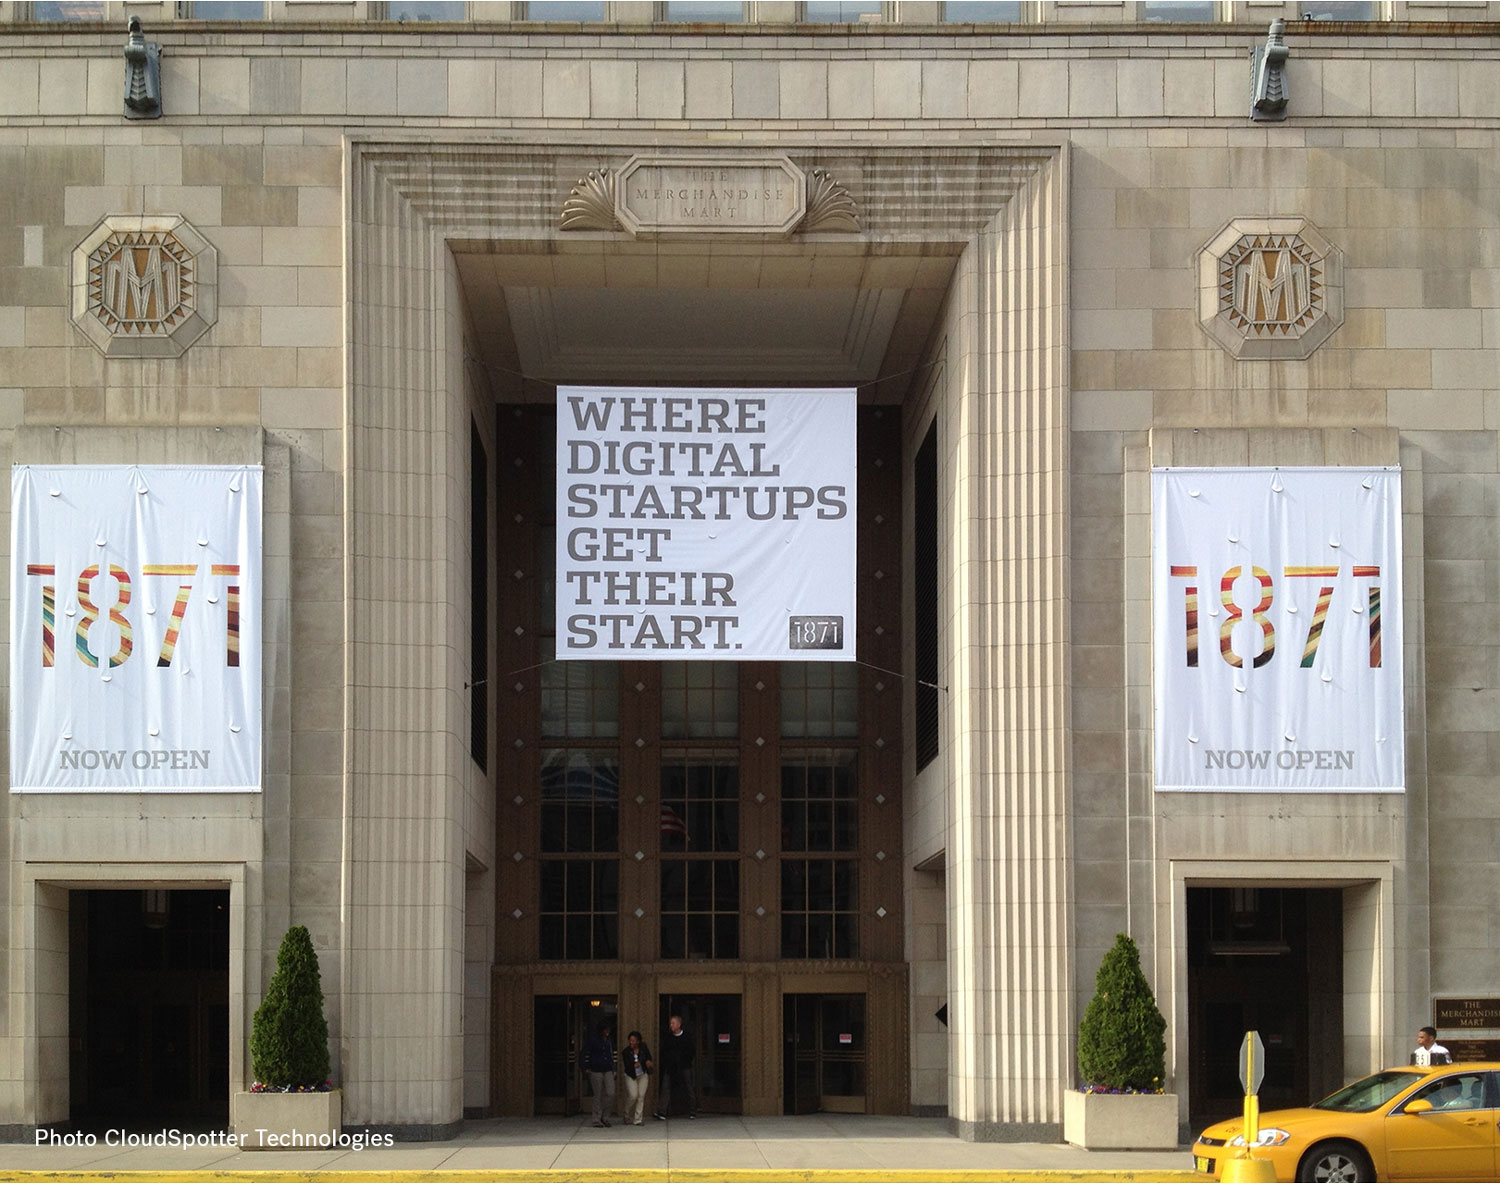 1871 banners at the entrance of the Merchandise Mart | Chicago Connectory